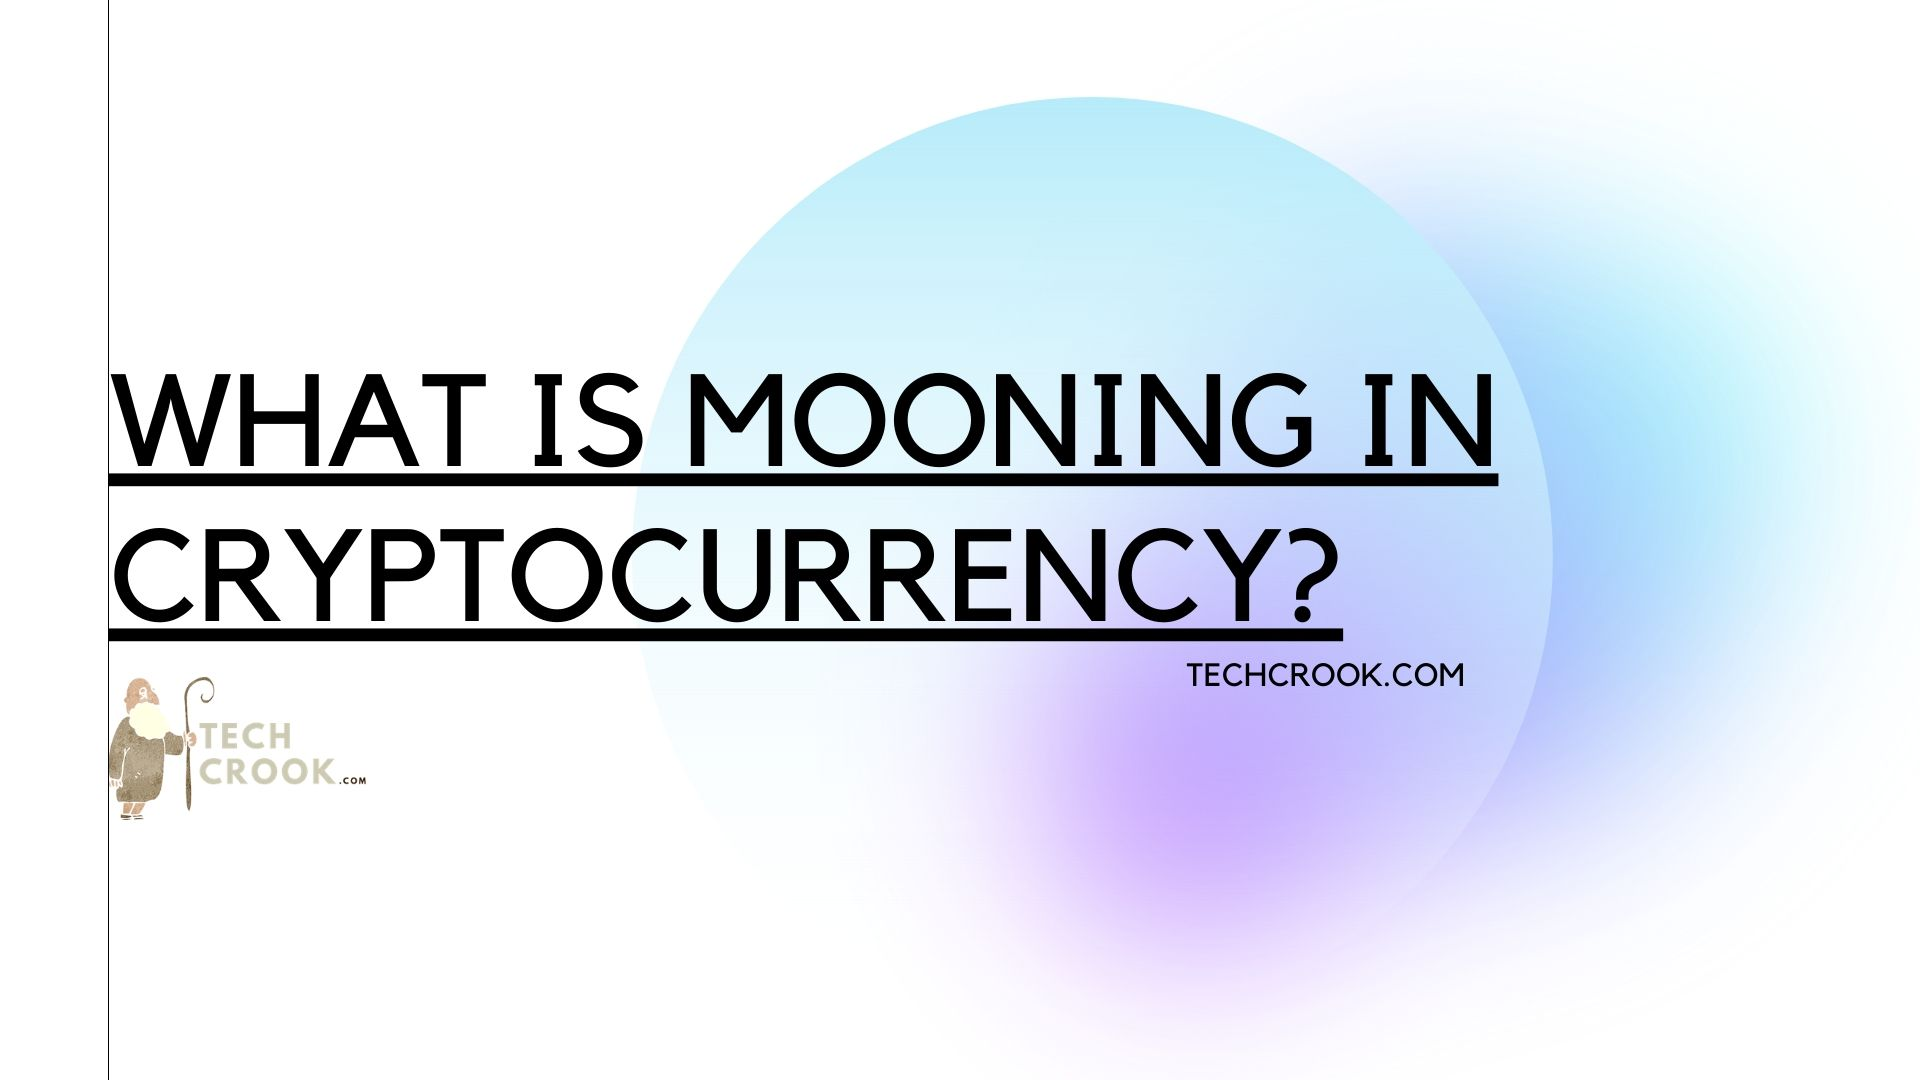 What is Mooning in Cryptocurrency